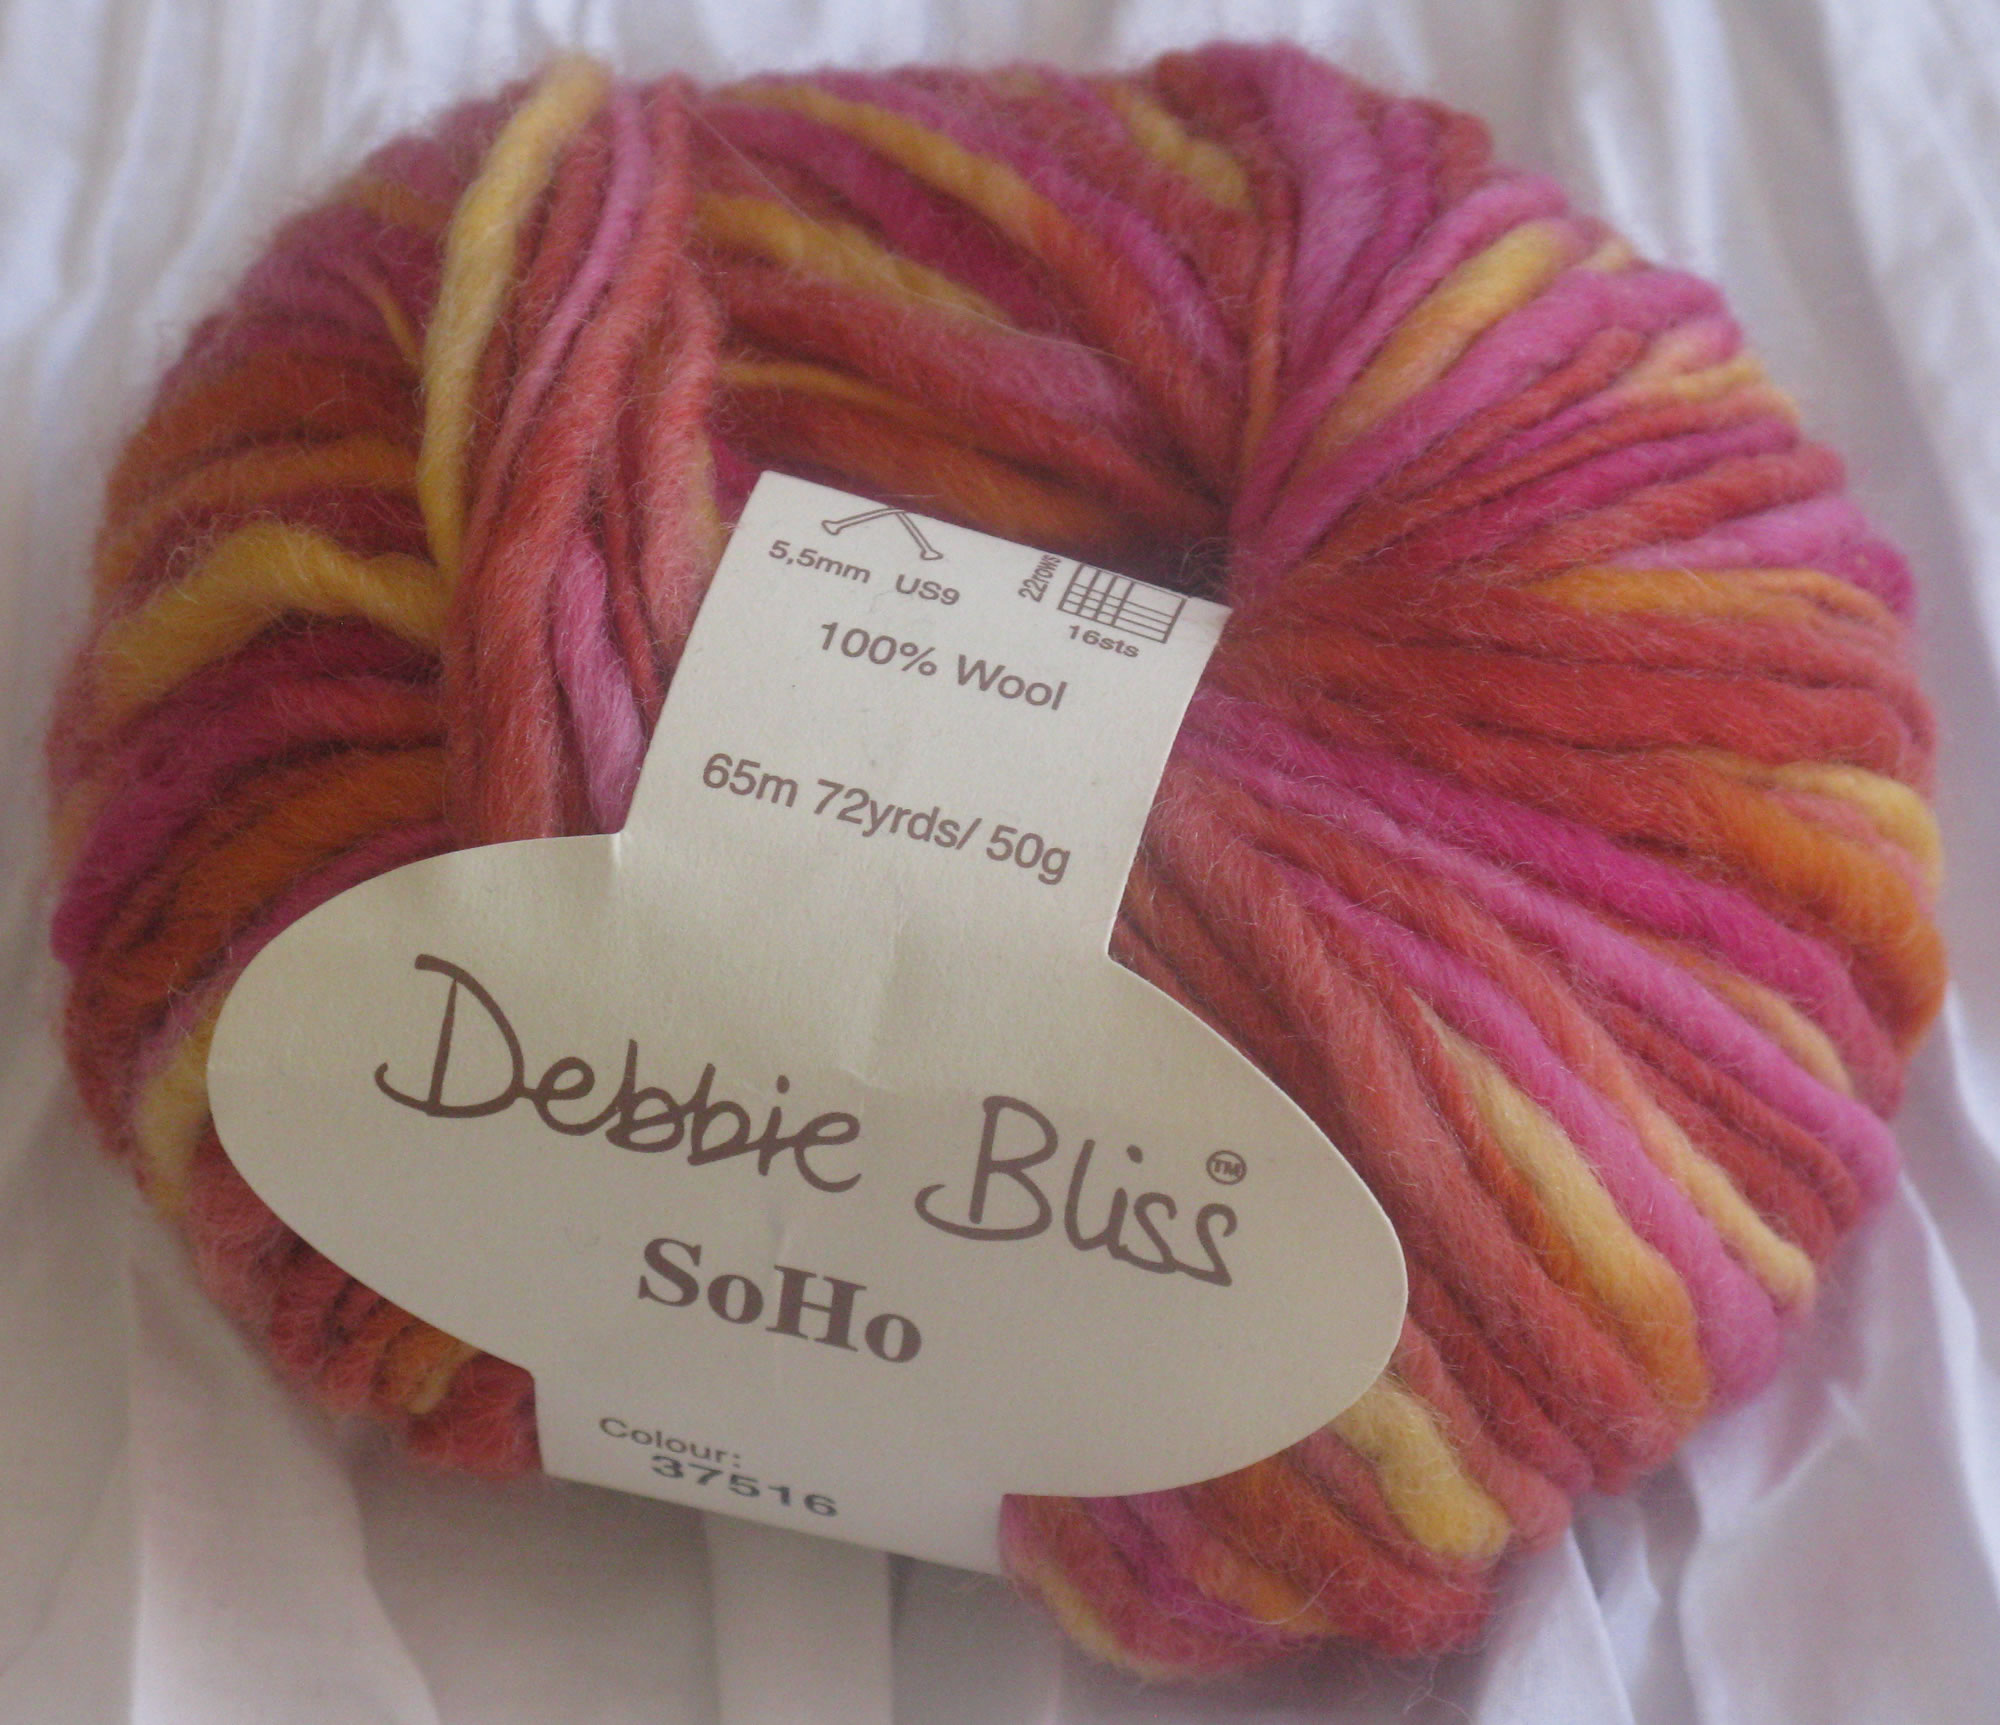 Ebay selling - Debbie Bliss wool for beds